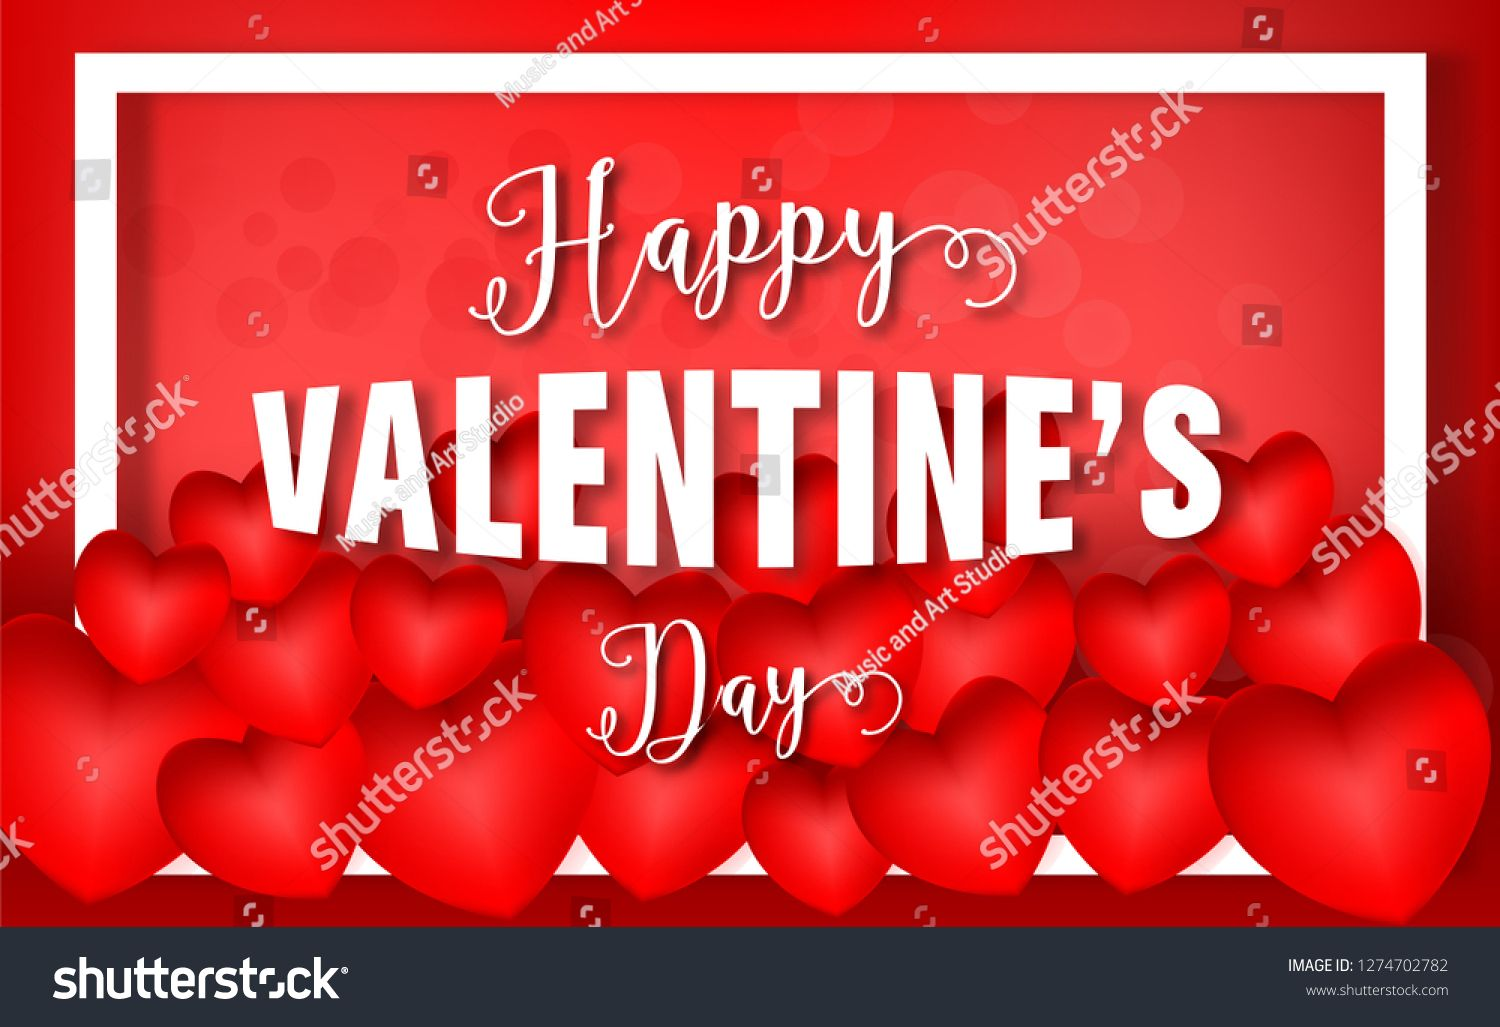 Valentines Day 3d Red Hearts And Happy Valentines Day Text Background Clip Art Design For Greetings Card Love Happy Valentine Valentines Happy Valentines Day